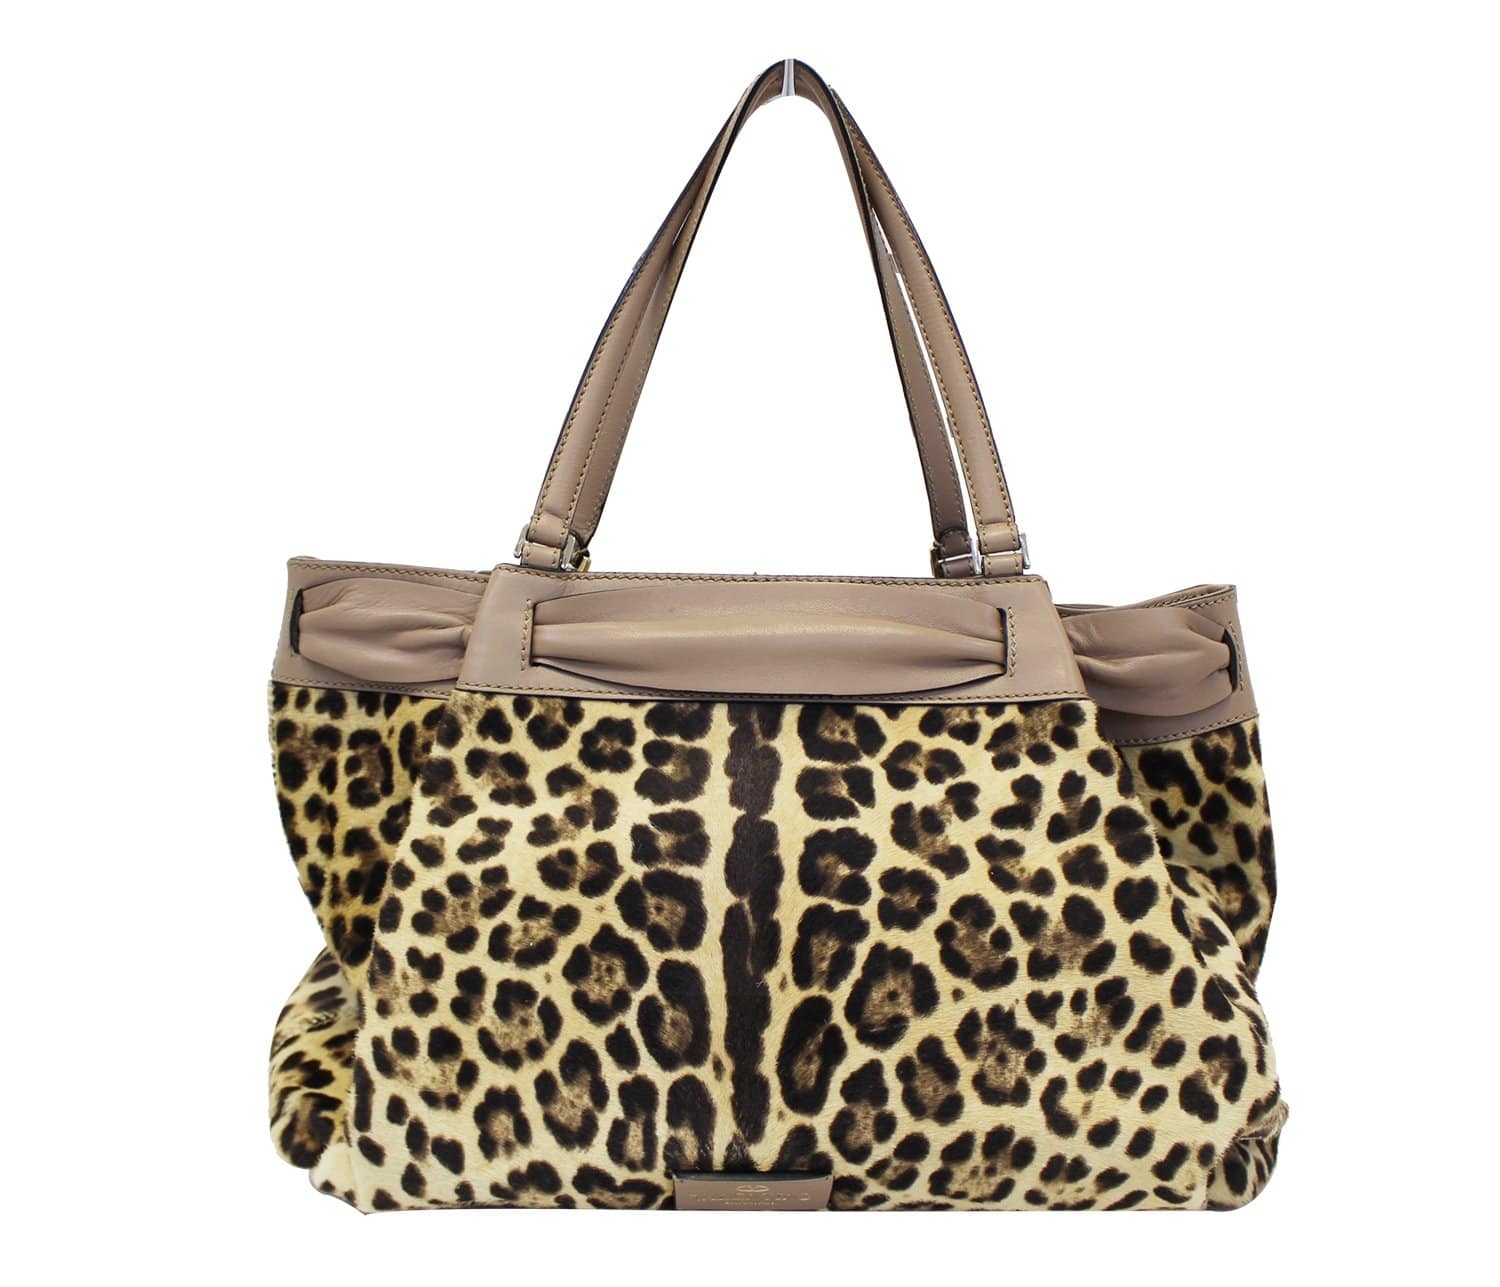 ffb570c3f9 Valentino Leopard Print with Leather Bow Satchel Bag